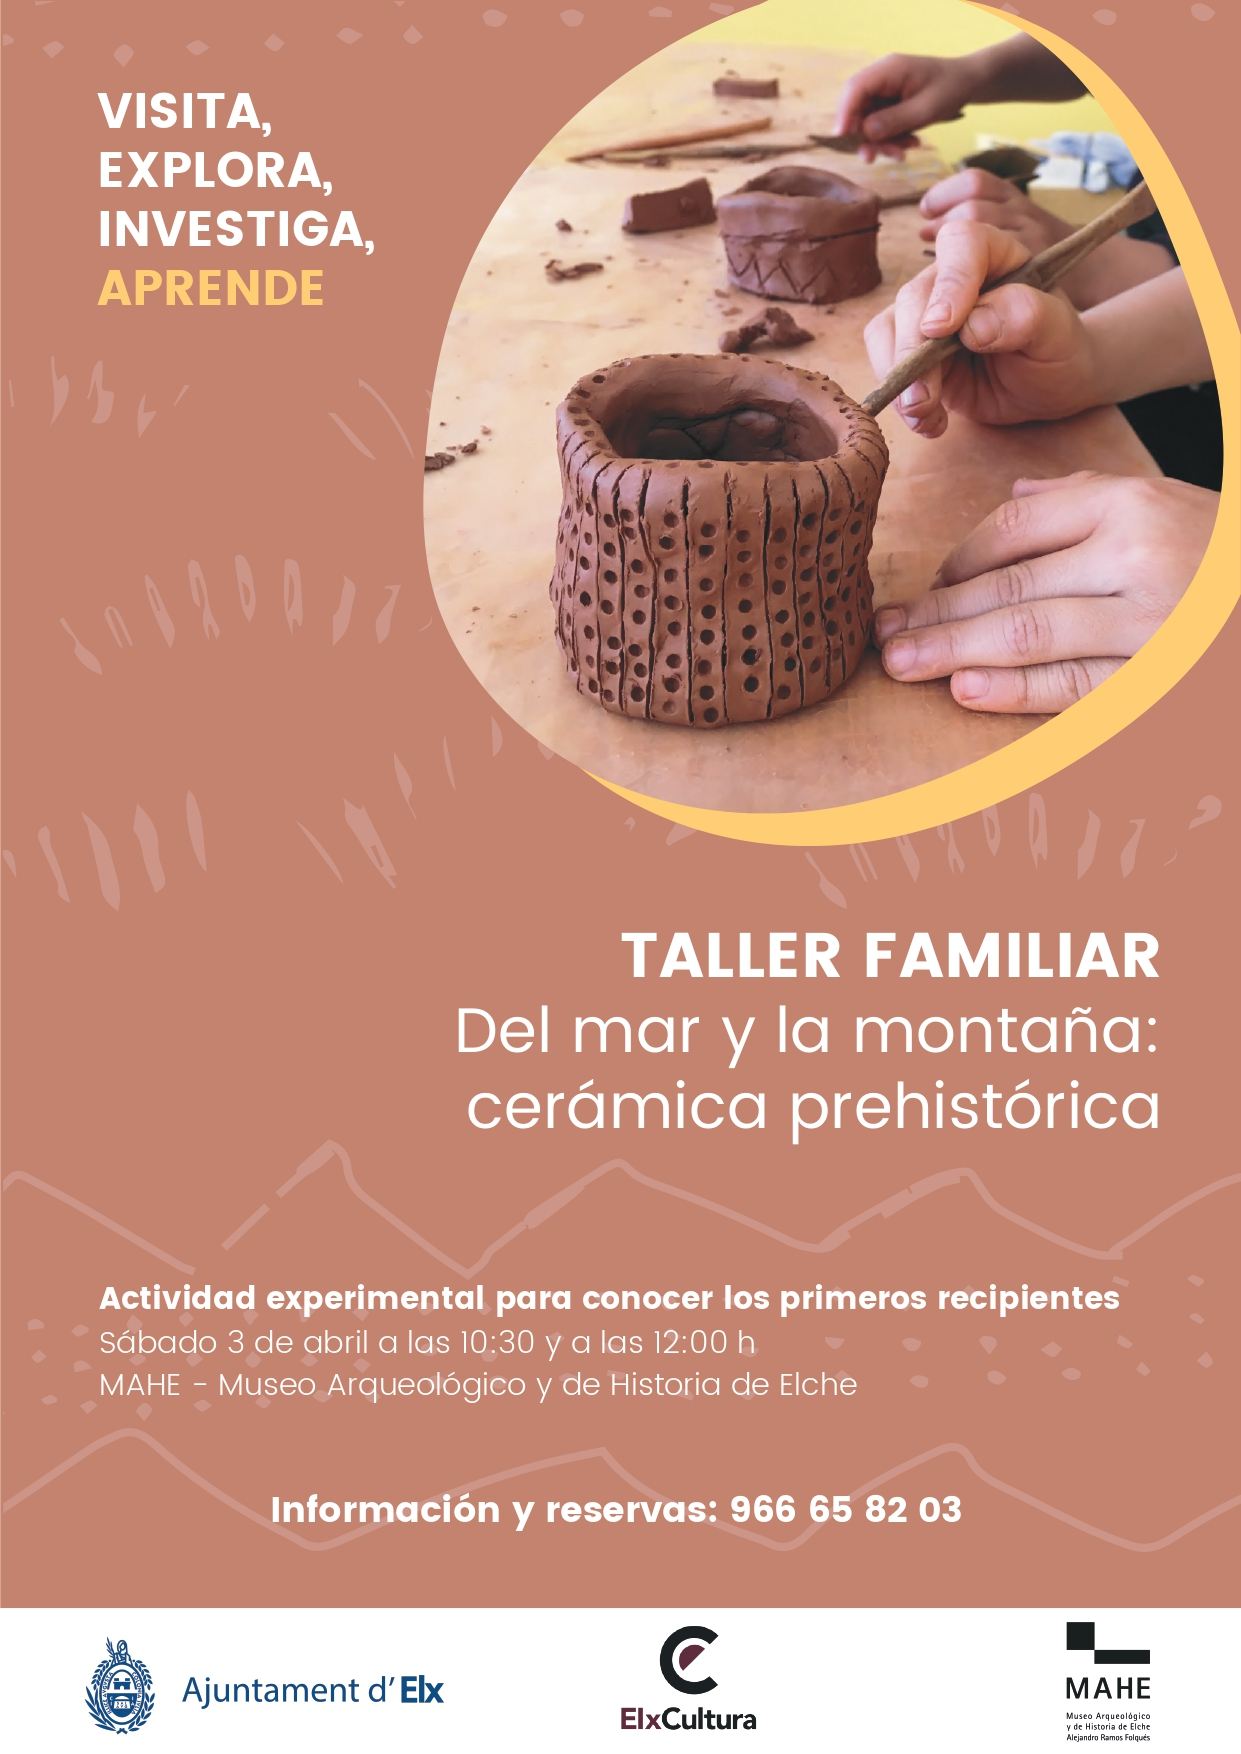 Cartel_ taller cerámica cardial 3-4-2021_pages-to-jpg-0002